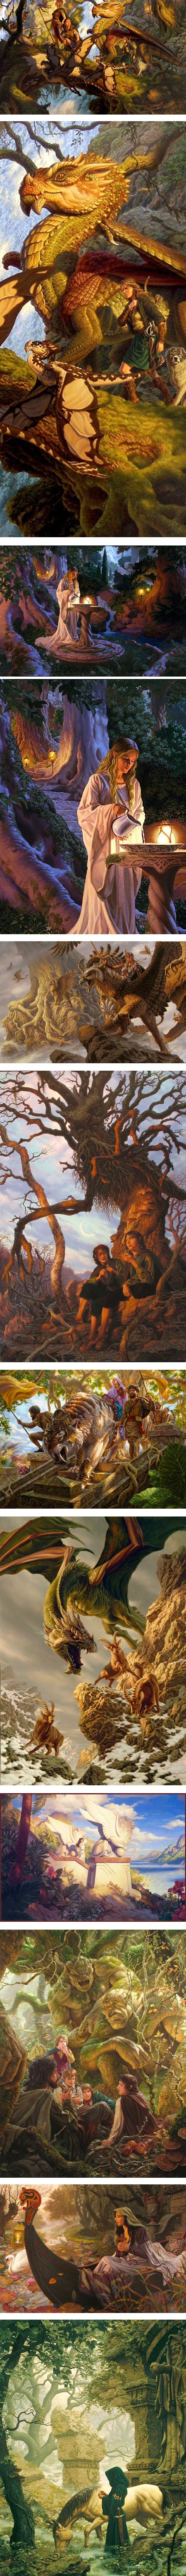 Raoul Vitale, fantasy art, concept art, gaming illustration